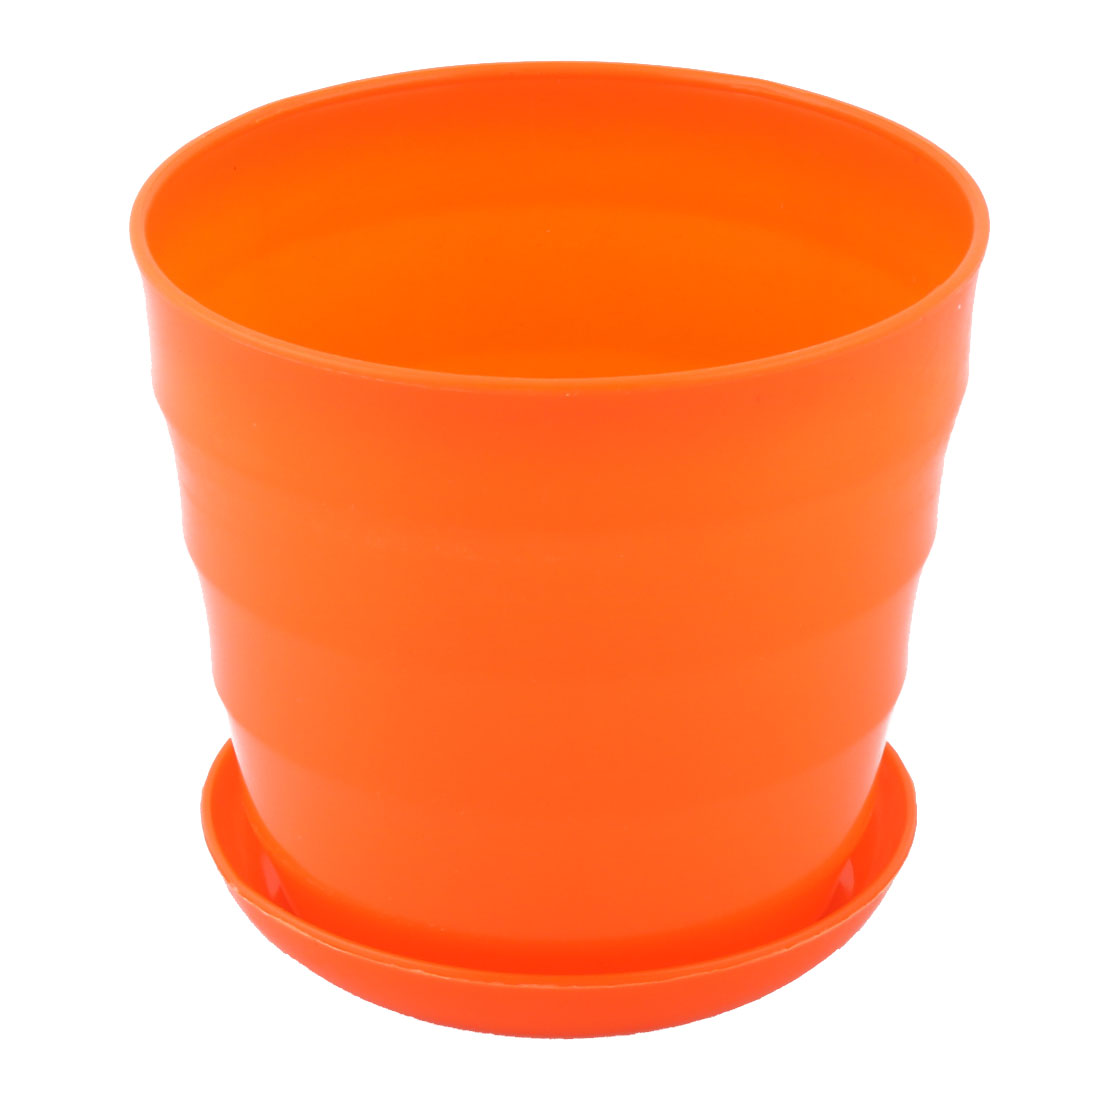 Yard Garden Plastic Round Plant Succulent Aloe Holder Flower Pot Container Orange